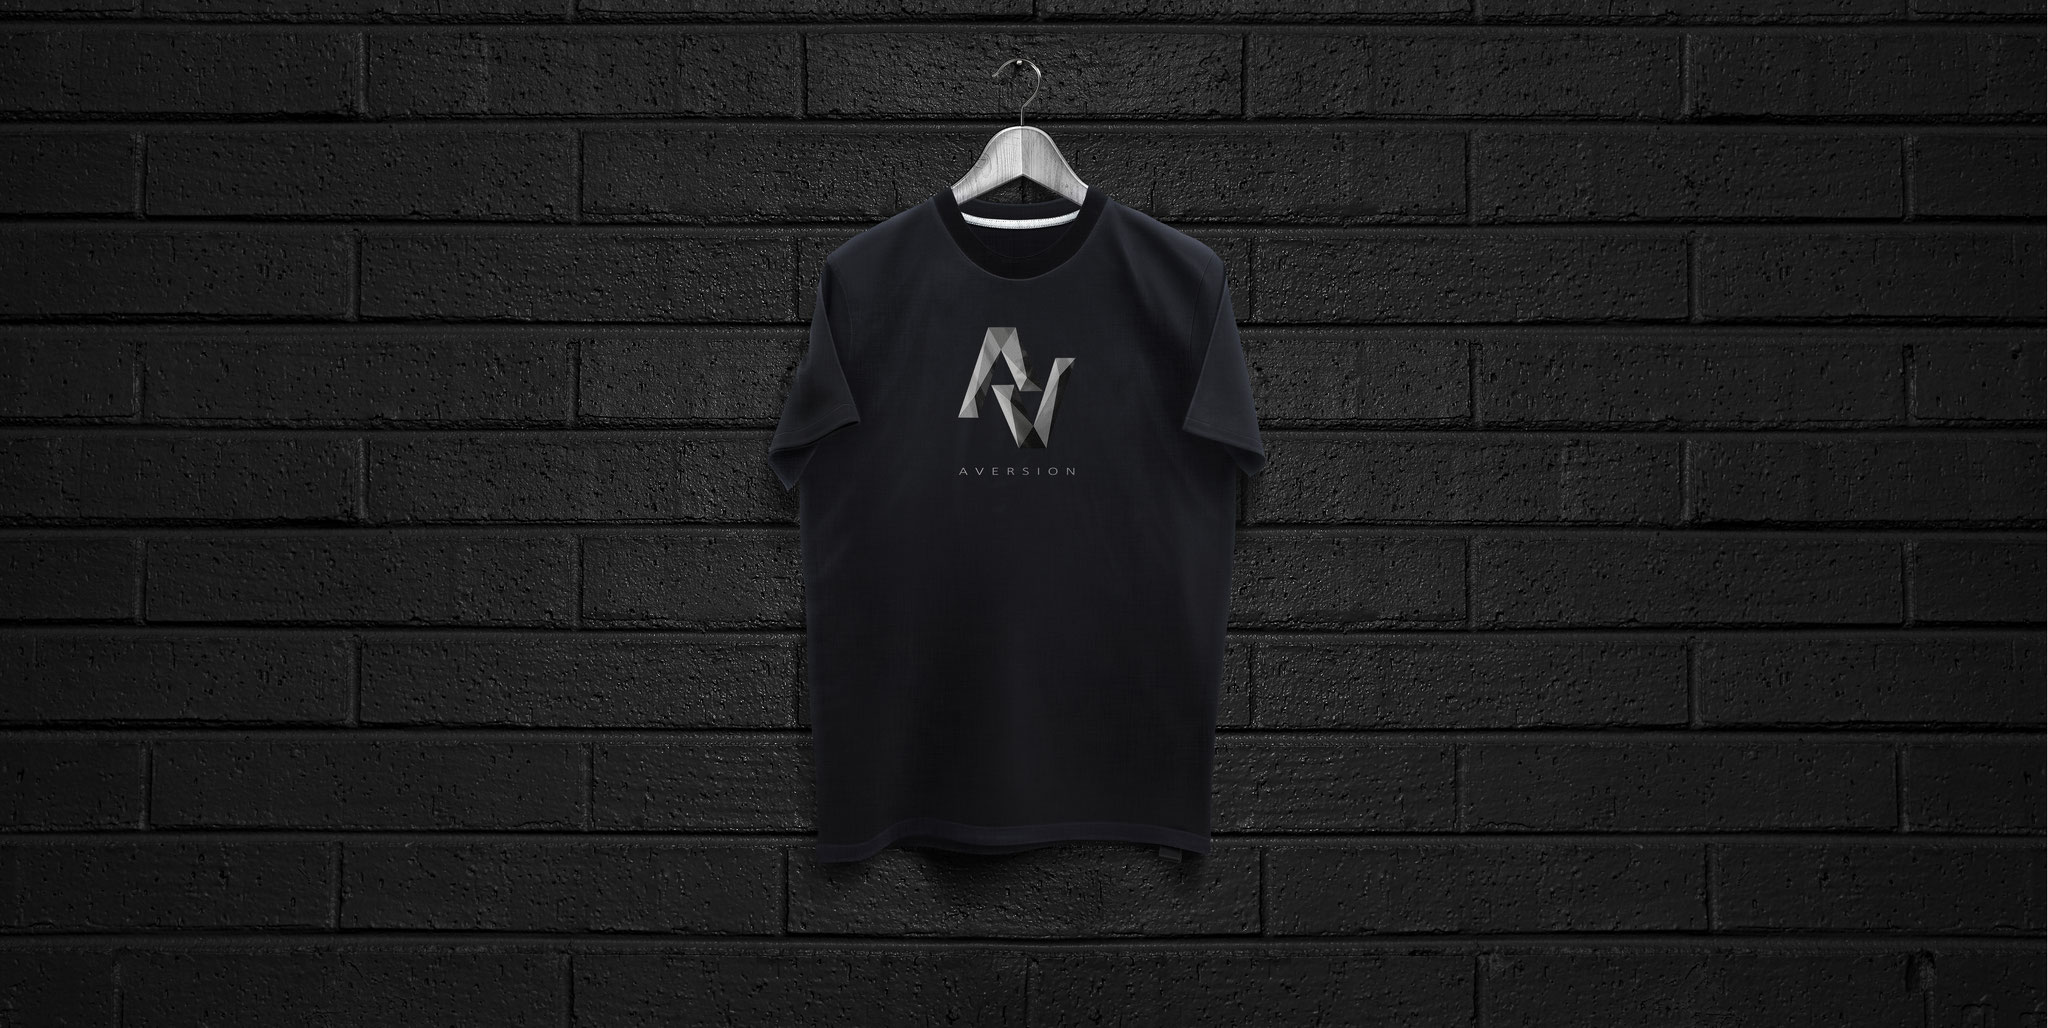 T-SHIRT BLACK | AVERSION-LOGO BRUST GROß